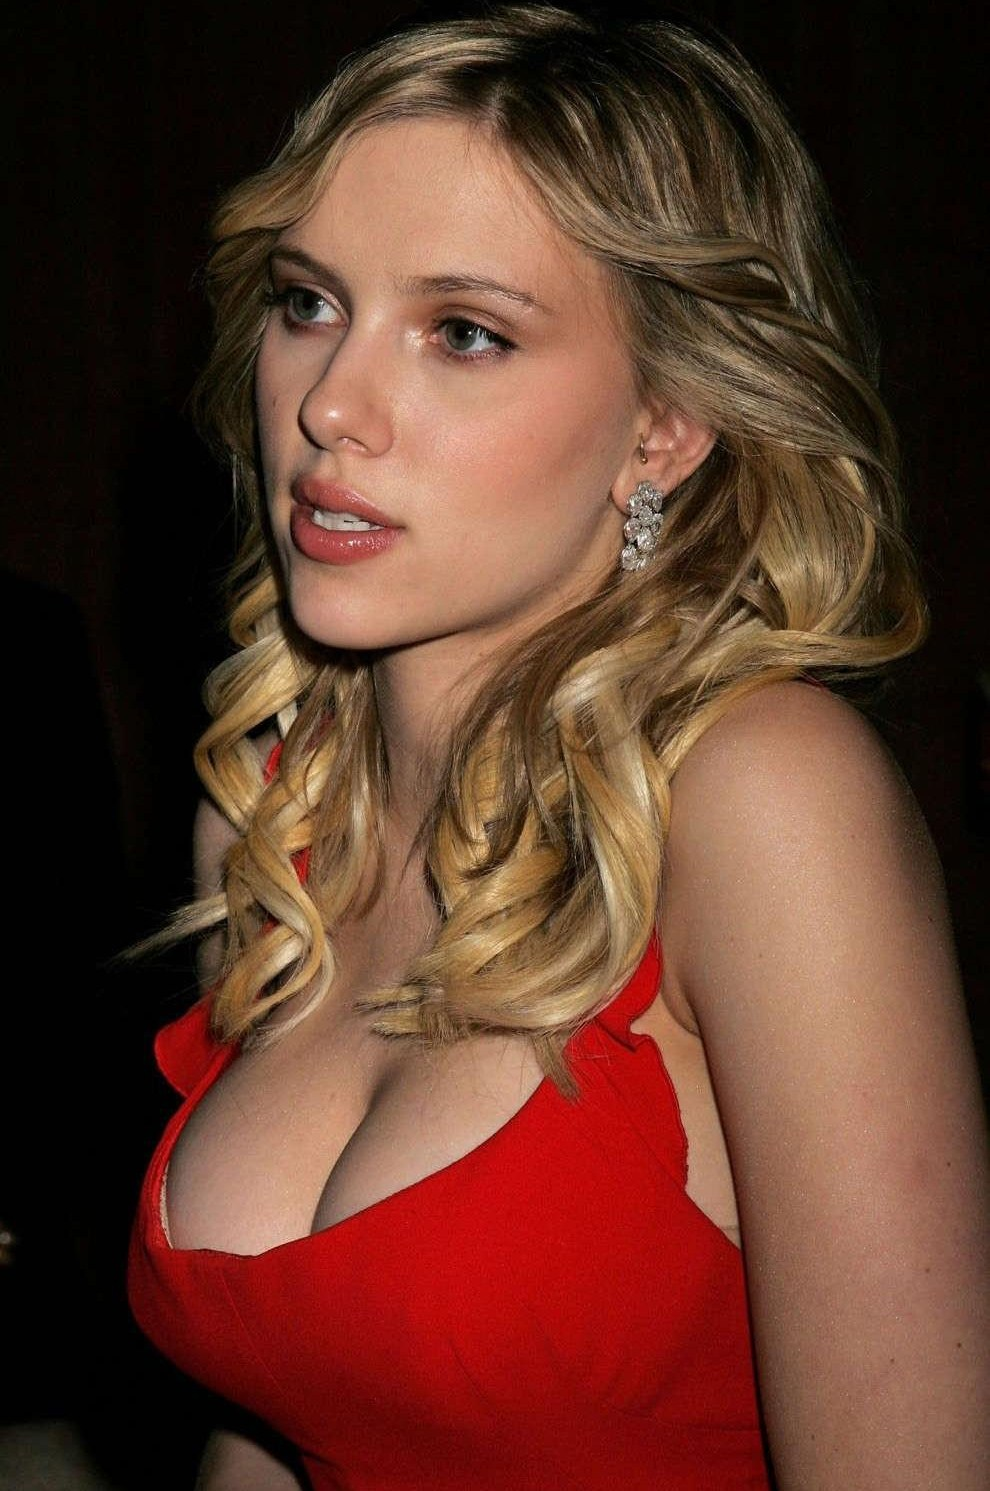 ICloud Scarlett Johansson nudes (45 foto and video), Ass, Fappening, Twitter, cameltoe 2019